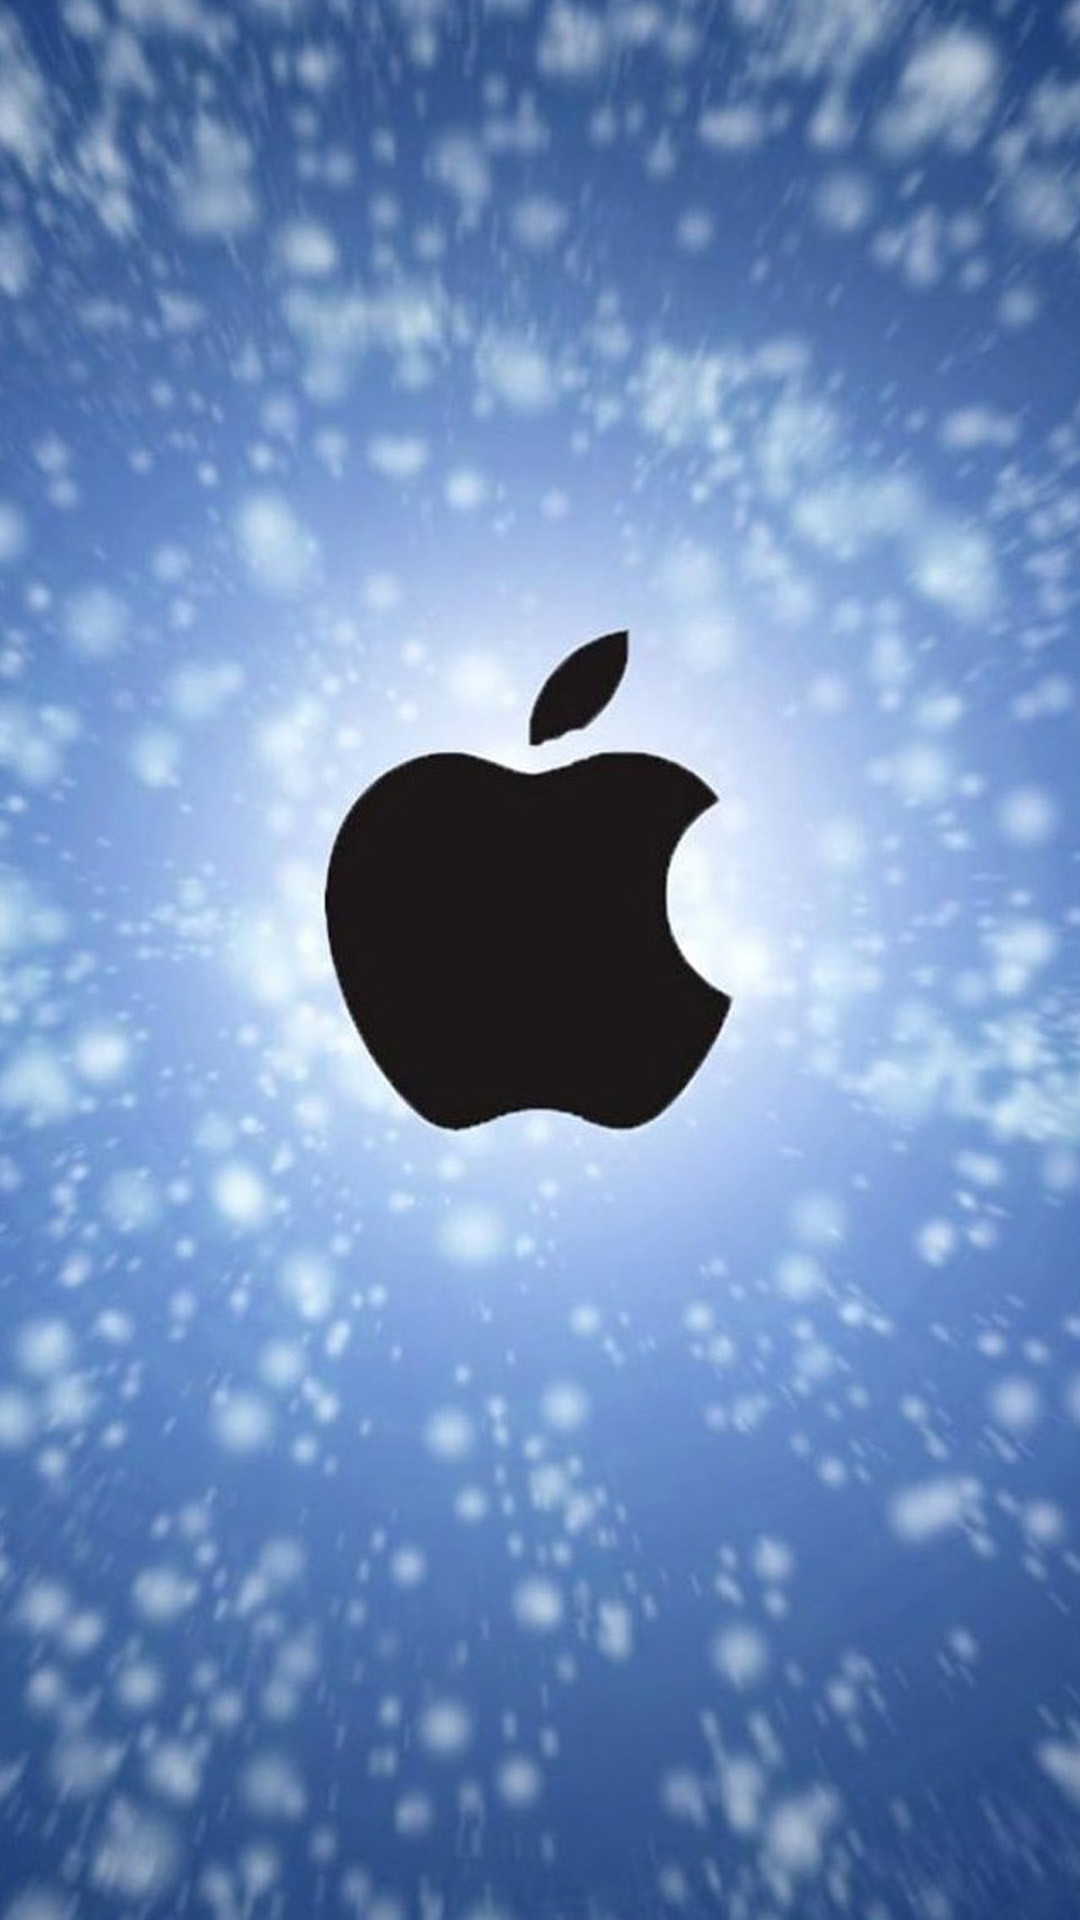 Apple Wallpapers For iPhone 6 Plus 18